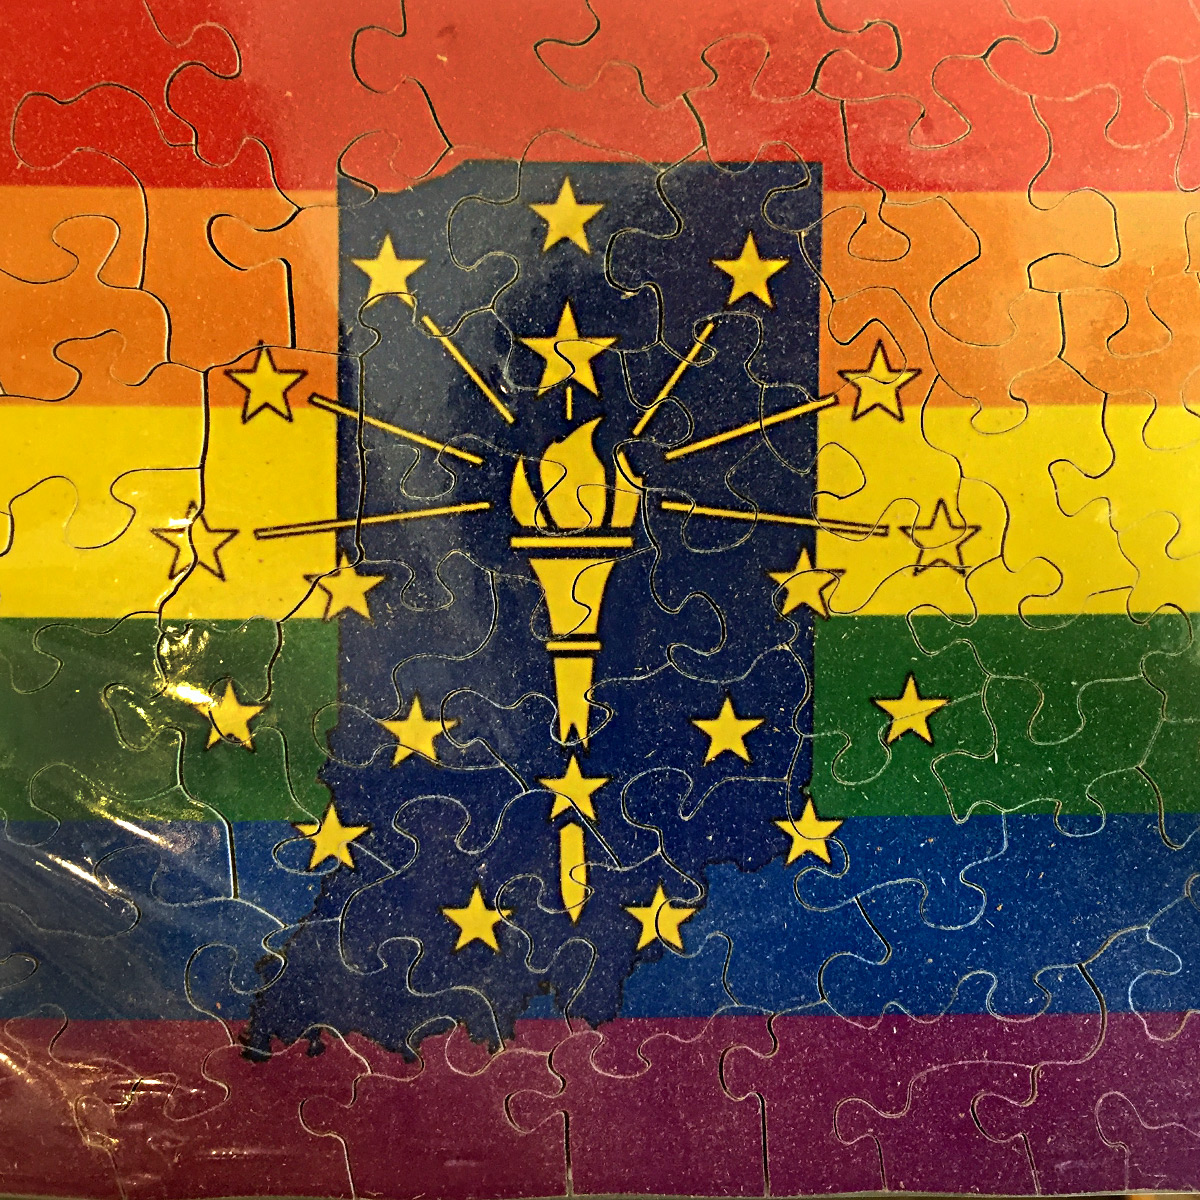 ICYMI June 8 Indiana Pride Flag puzzle by Press Puzzles at Homespun